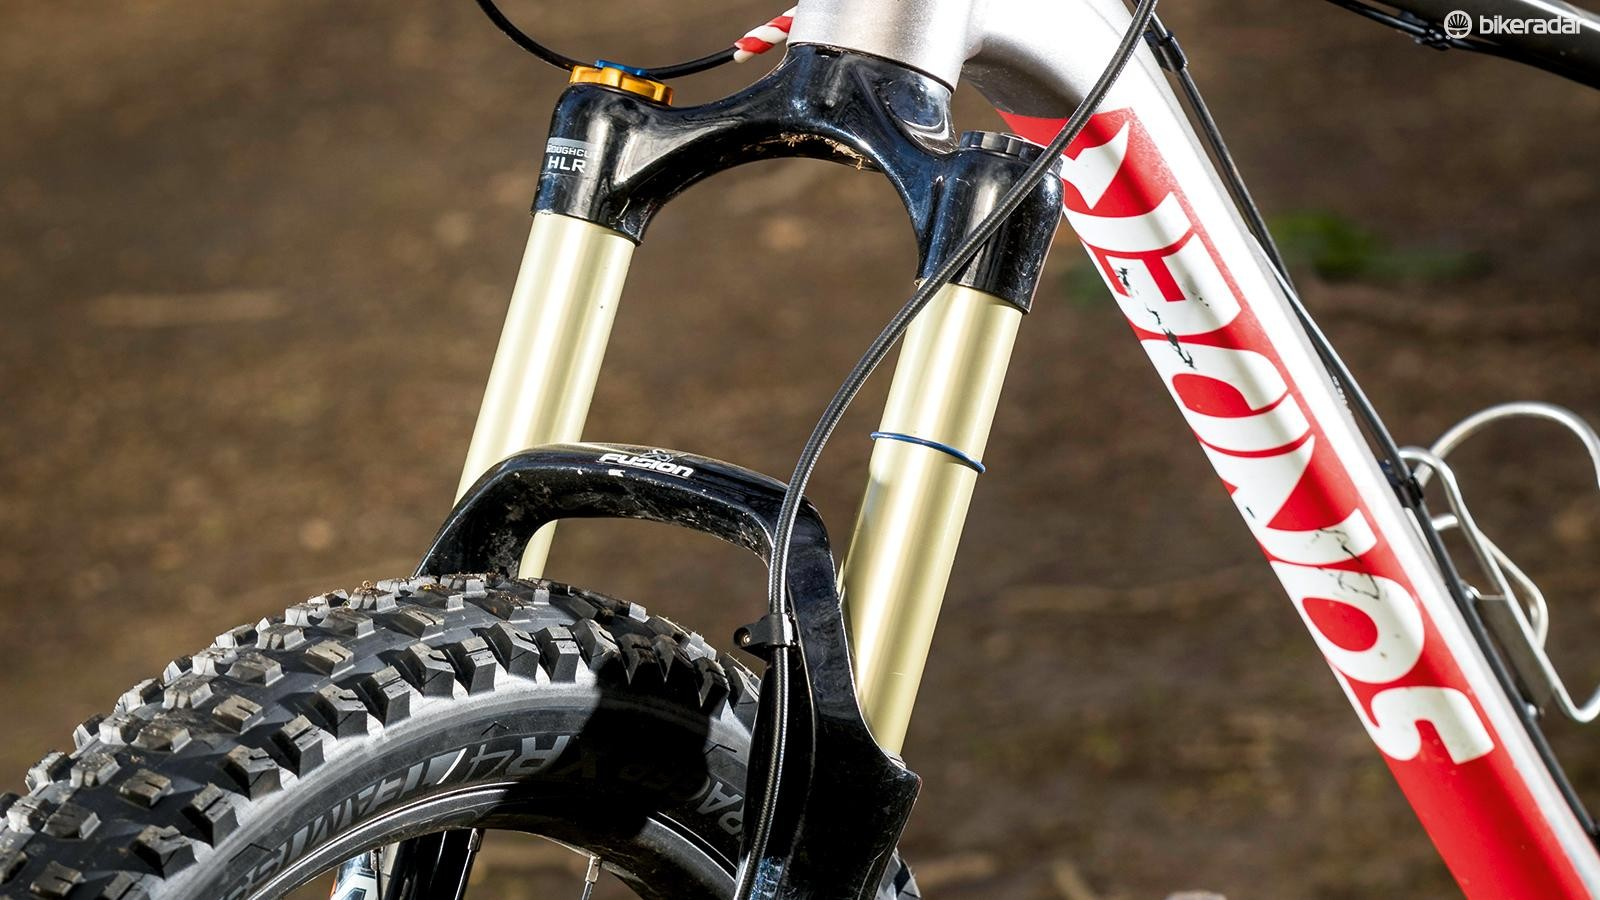 The fork is heavier than a Fox 34 Factory and RockShox Pike RCT3, but costs less